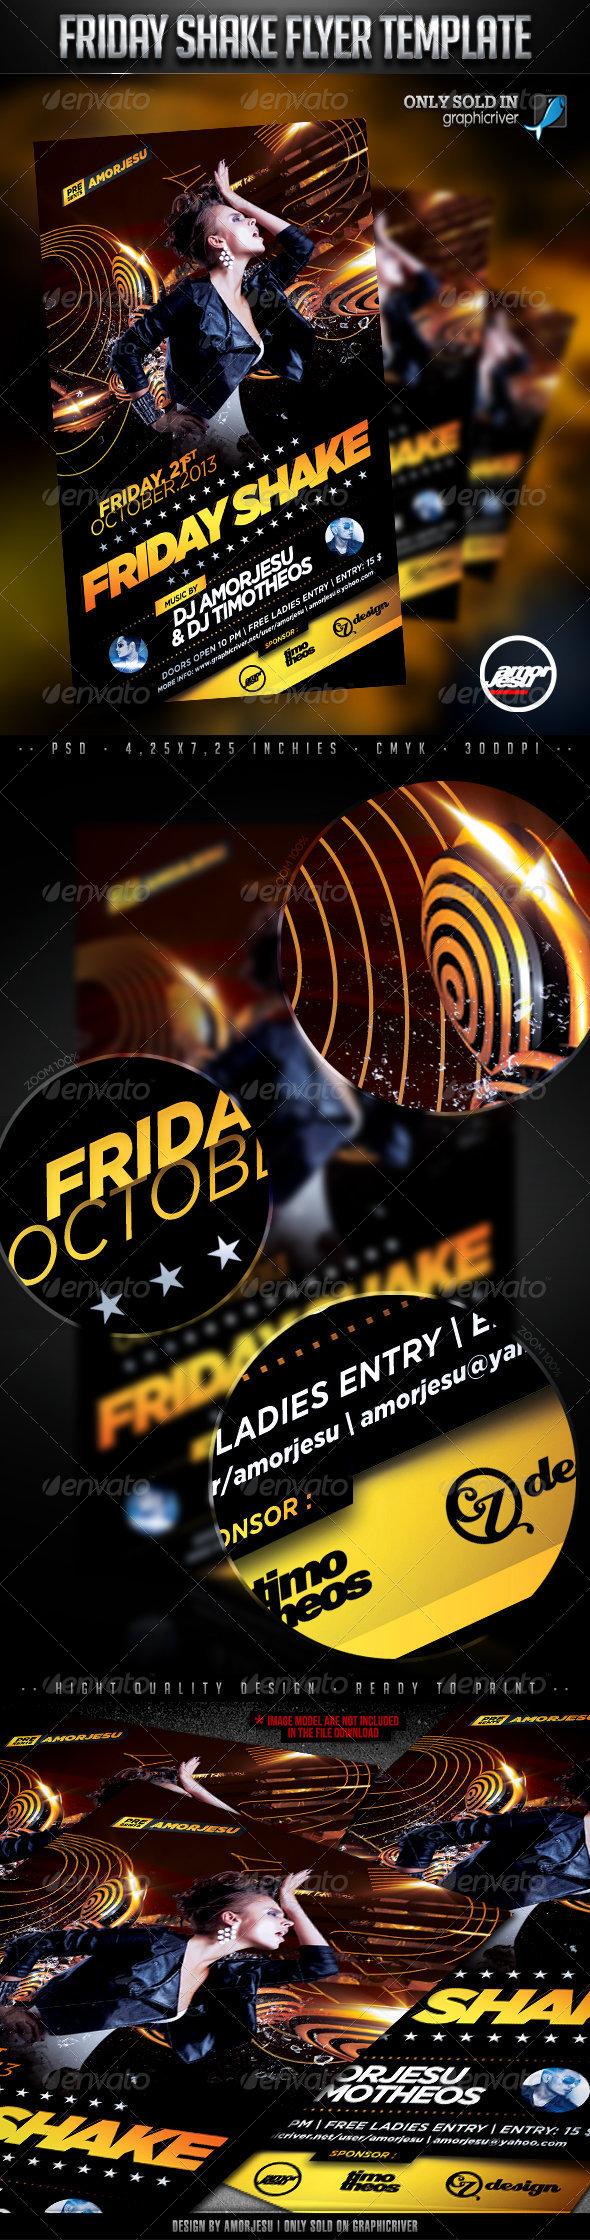 Friday Shake Flyer Template - Clubs & Parties Events